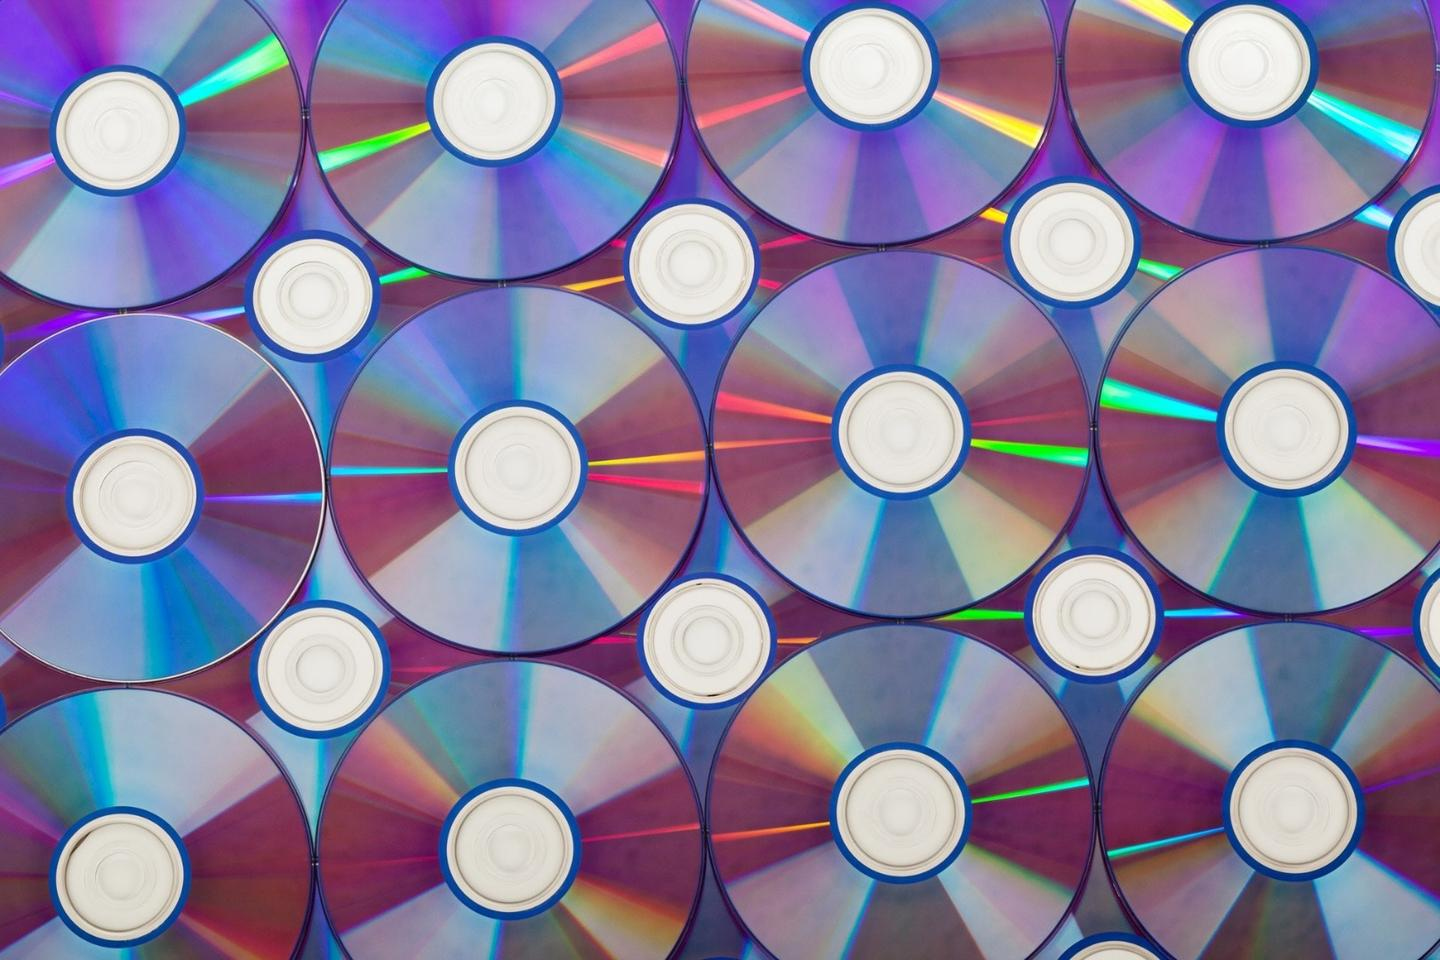 While books and vinyl records seem to have won the battle as physical media of choice for their individual mediums, what is the equivalent for film? Laserdisc or VHS?